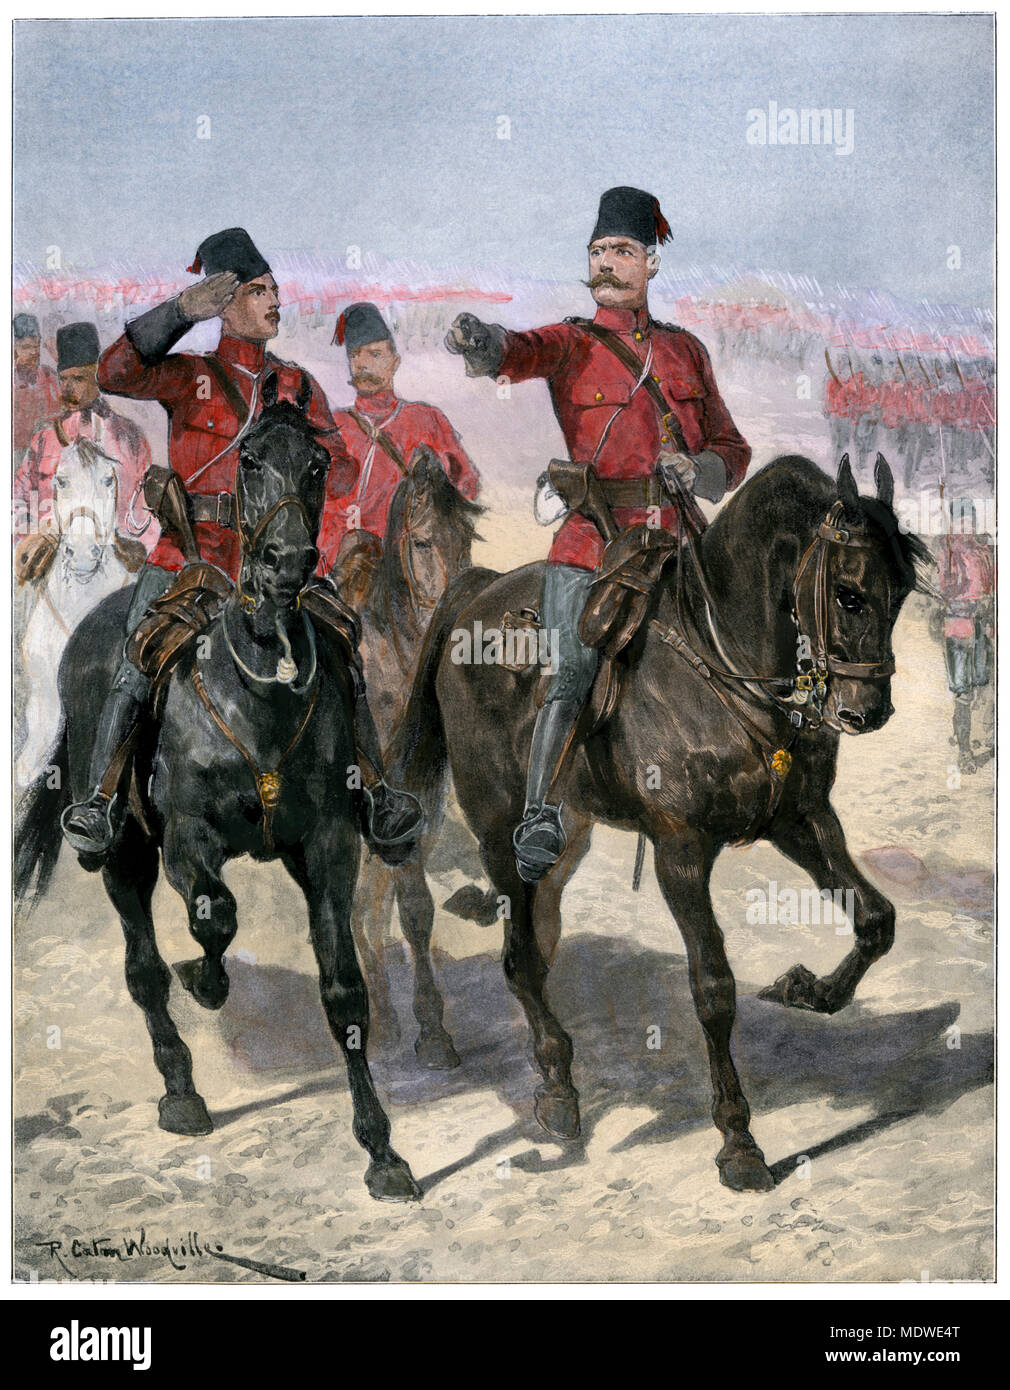 British General Kitchener leading Egyptian troops toward Dongola, Sudan, 1896. Hand-colored halftone of an illustration - Stock Image